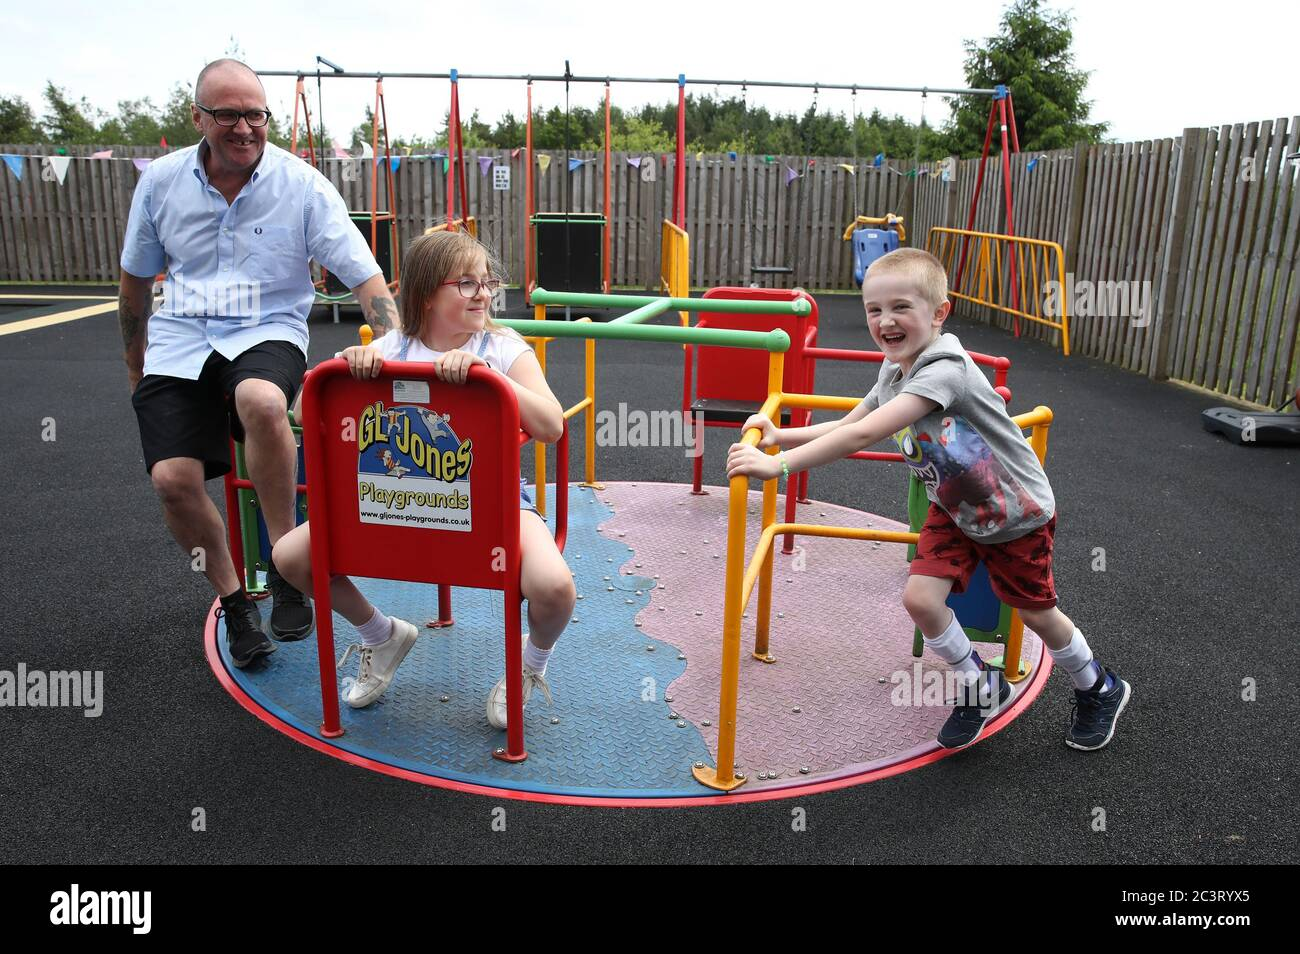 Callum McMichael pushes his sister Laura and father Barry on the roundabout in the outside therapy area at the Craighalbert Centre. Coronavirus adaptations have been installed at the Scottish Centre for Children with Motor Impairments, Craighalbert Centre, Cumbernauld, as Scotland continues gradually lifting coronavirus lockdown measures. Stock Photo